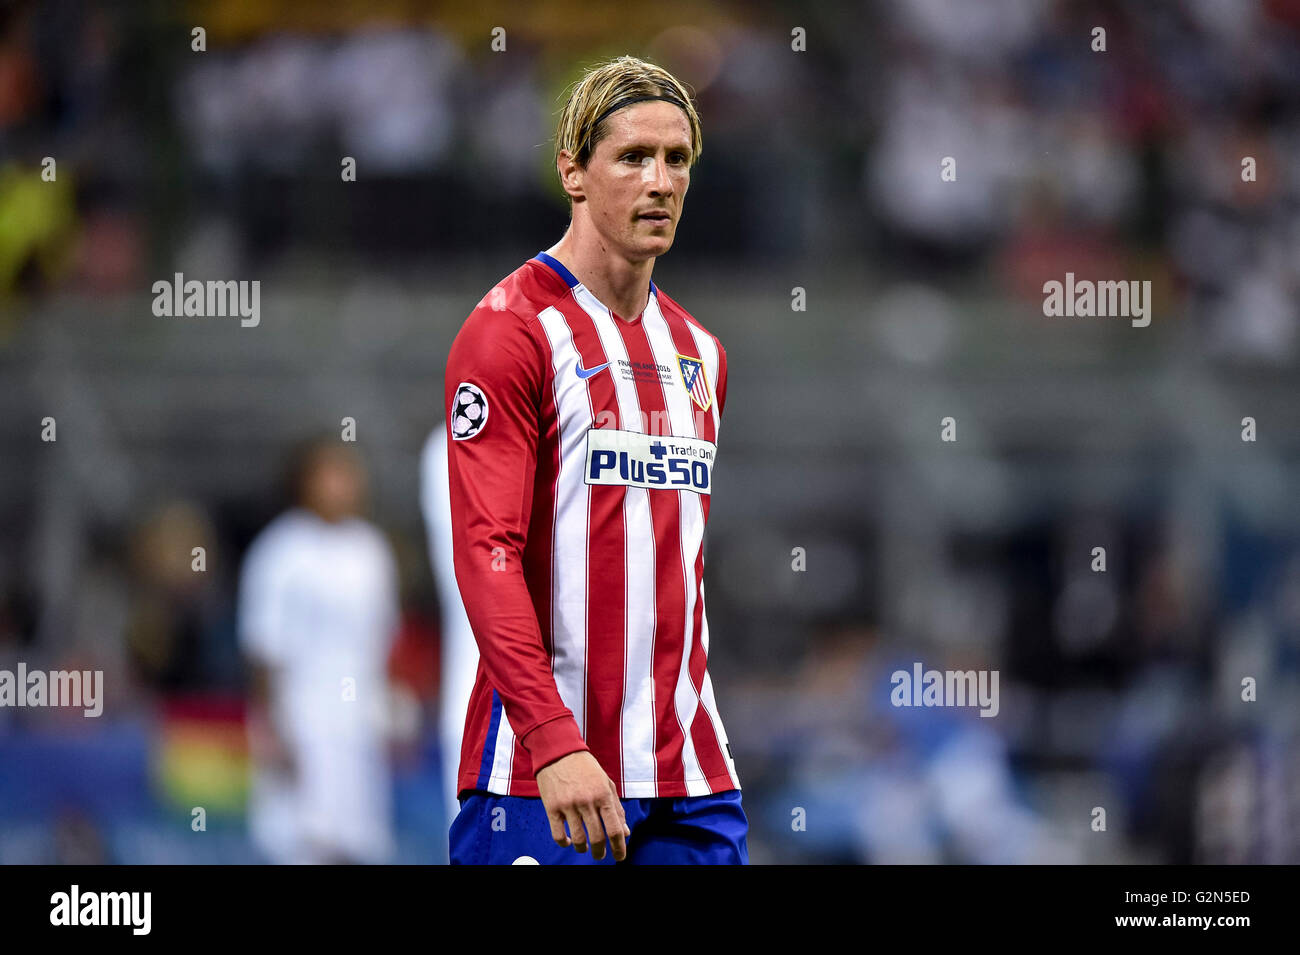 Fernando Torres Of Atletico Madrid During The Uefa Champions League Final Between Real Madrid And Atletico Madrid Atletico Madr Stock Photo Alamy